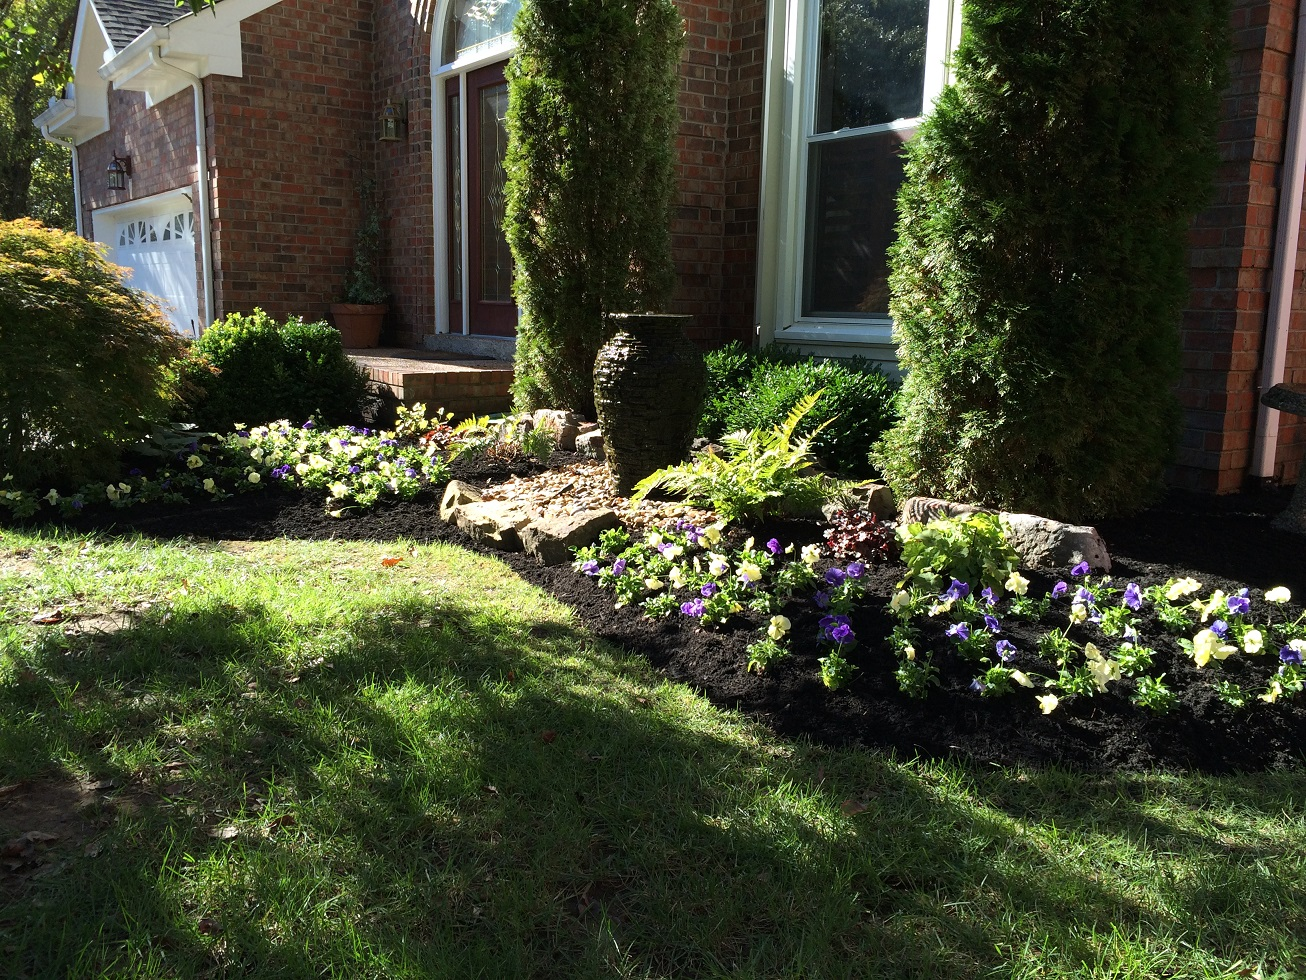 Landscaping and landscaping ideas jvi secret gardens for Garden scaping ideas